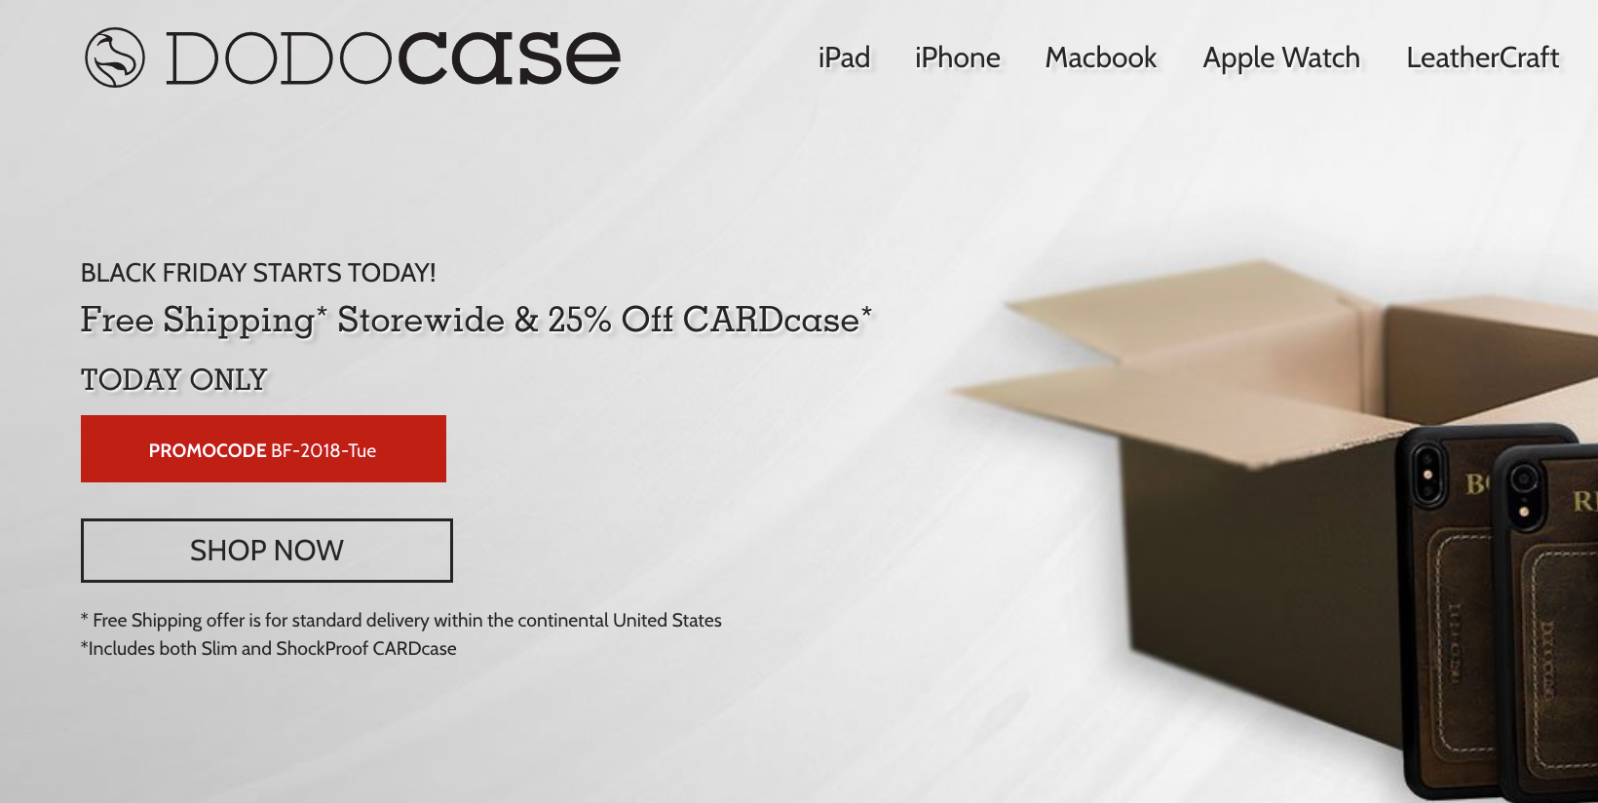 DODOcase offers 25% off iPhone XS/Max/R cases for today only + free shipping sitewide